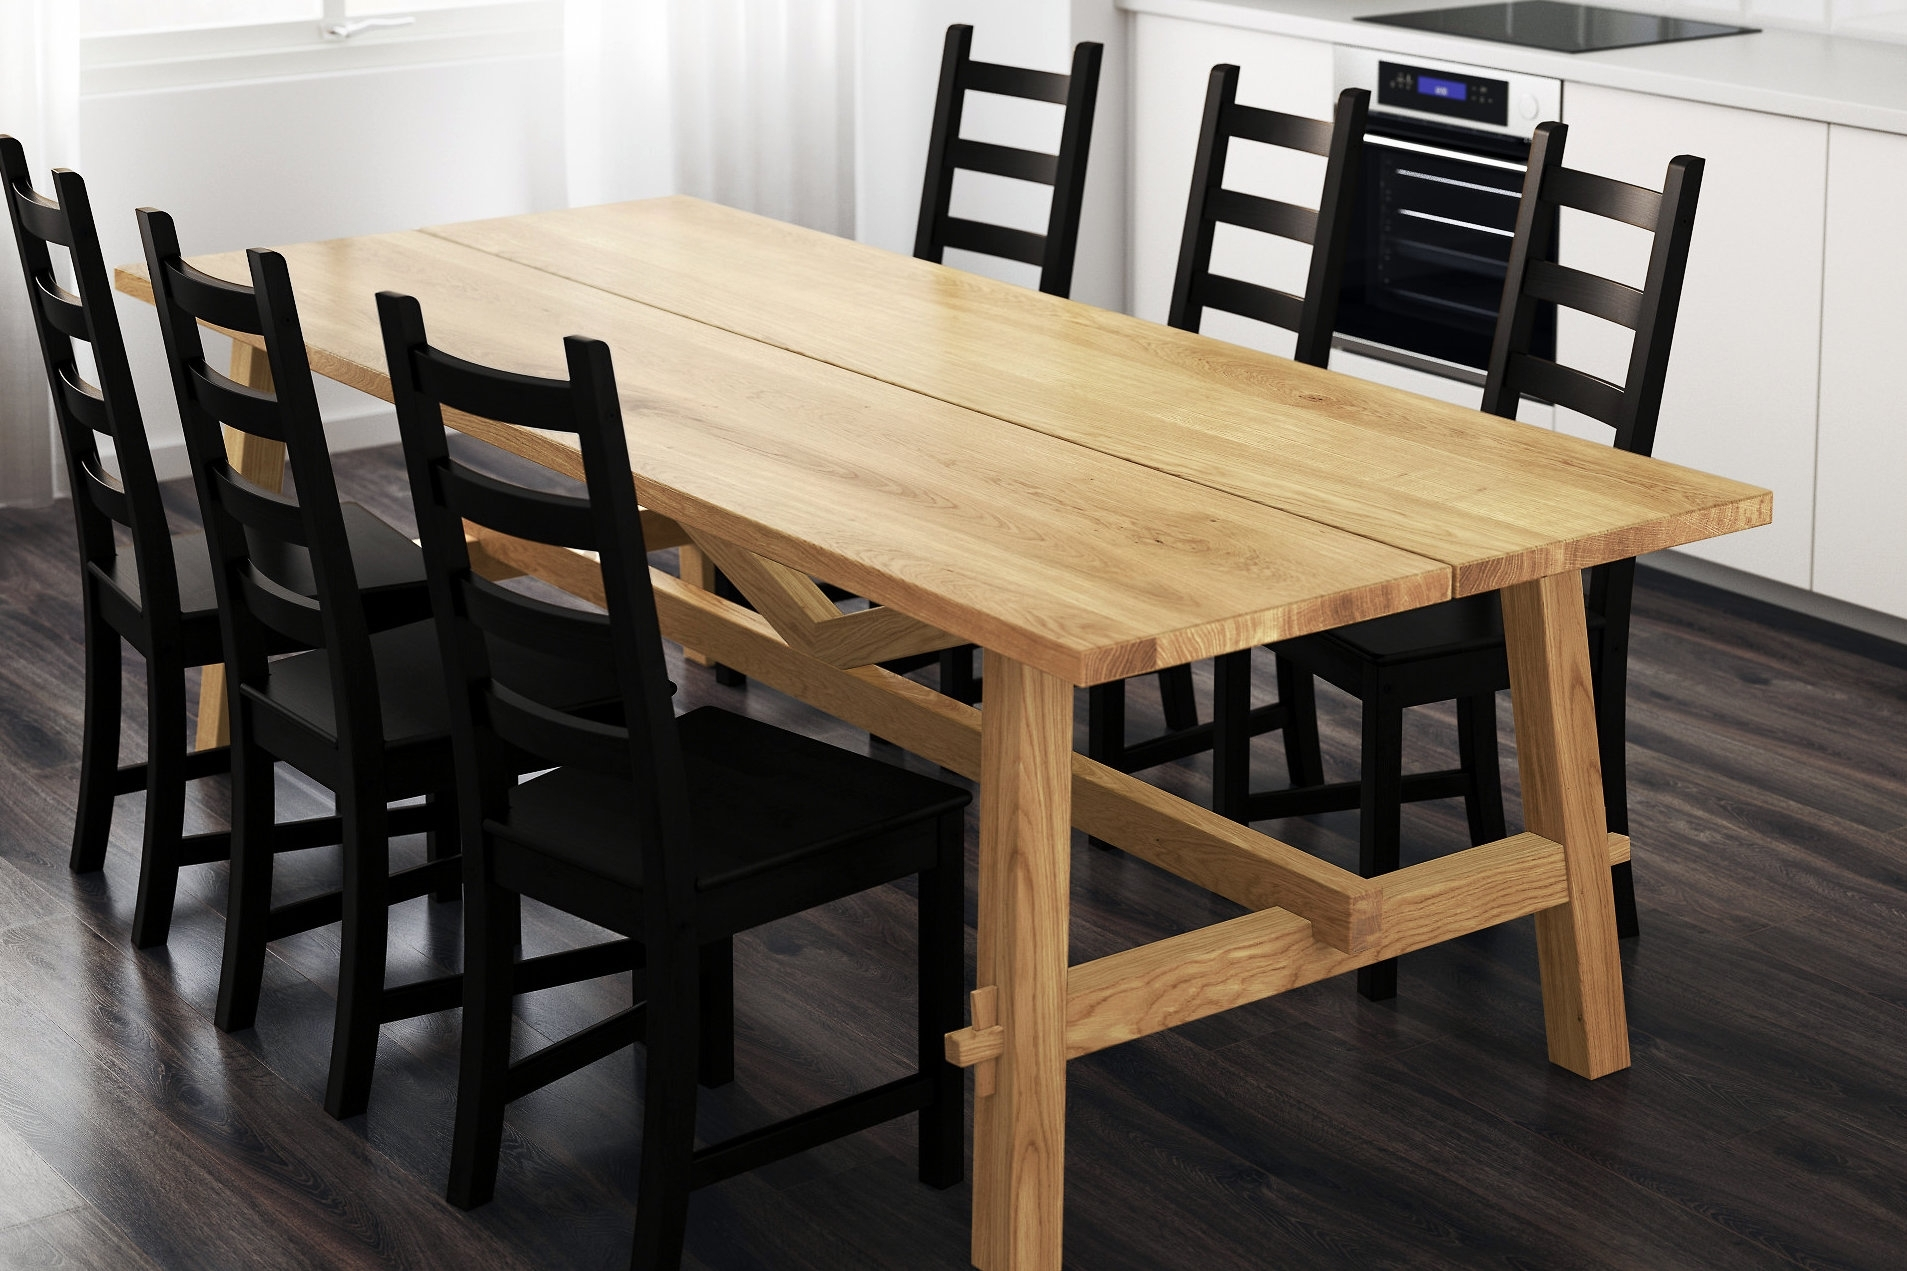 Get The Best Wood Table For Dining – Furnish Ideas Within Most Recent Teagan Extension Dining Tables (Image 7 of 20)